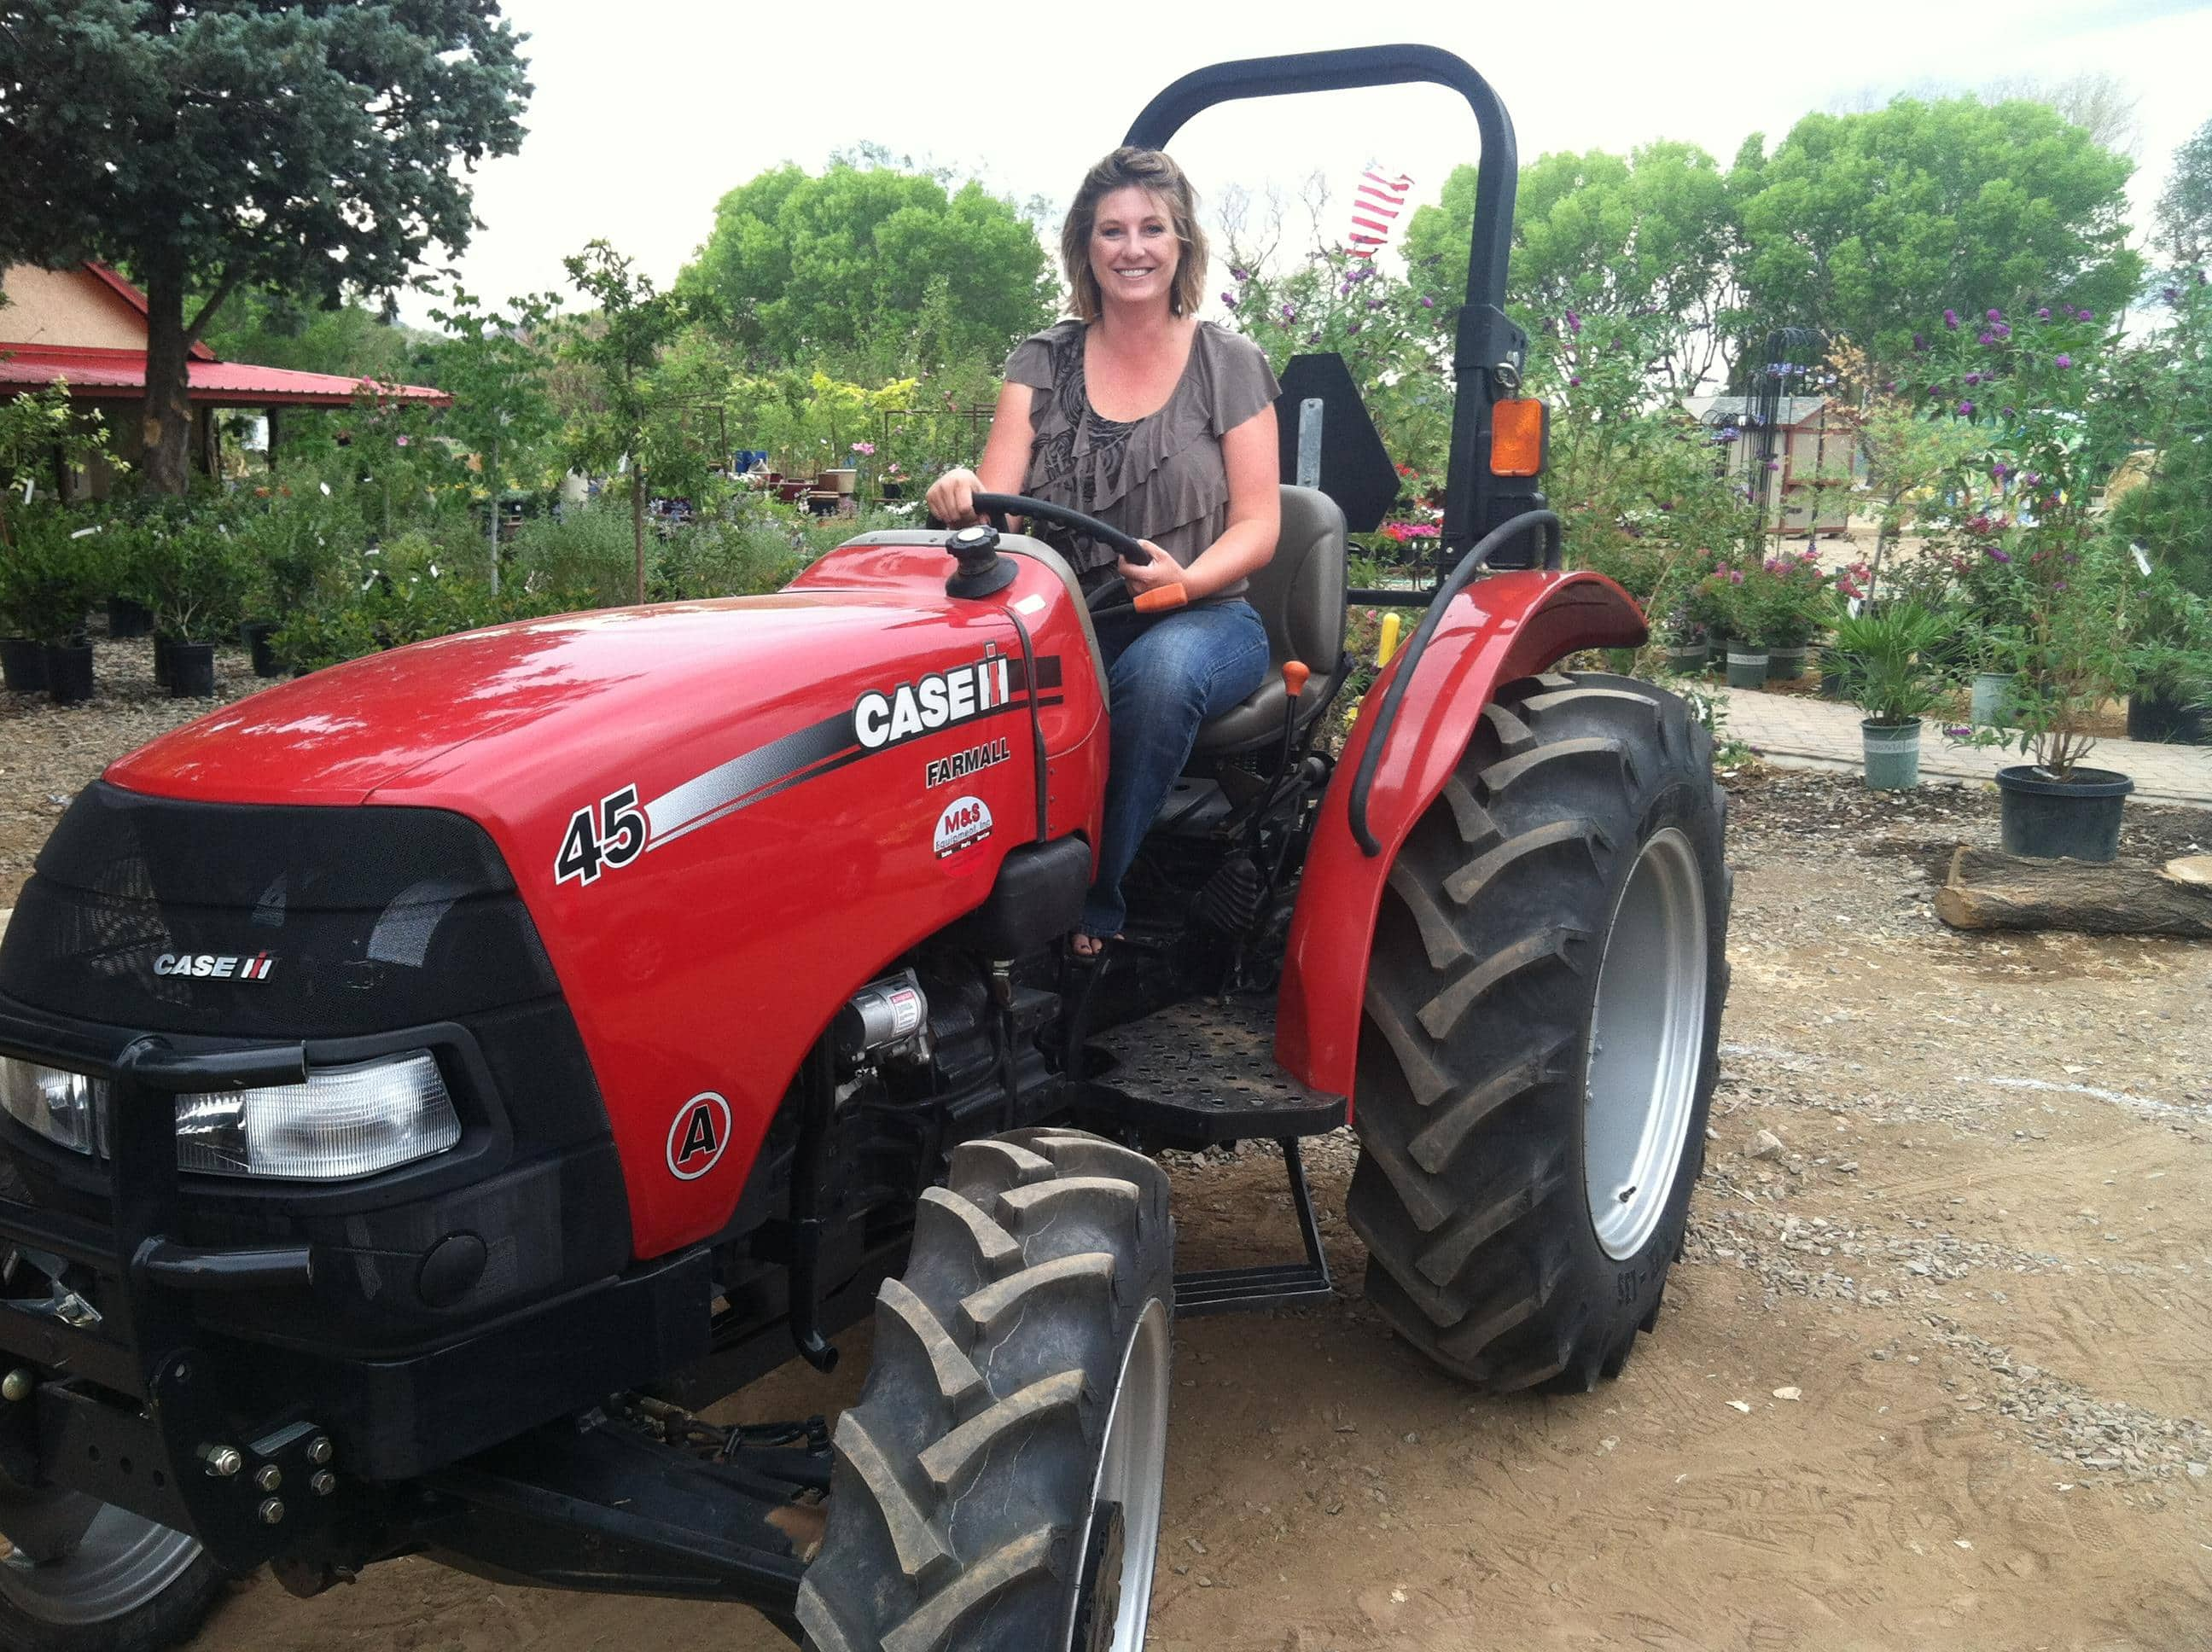 Arizona Agriculture Advocate Wins Case IH Tractor